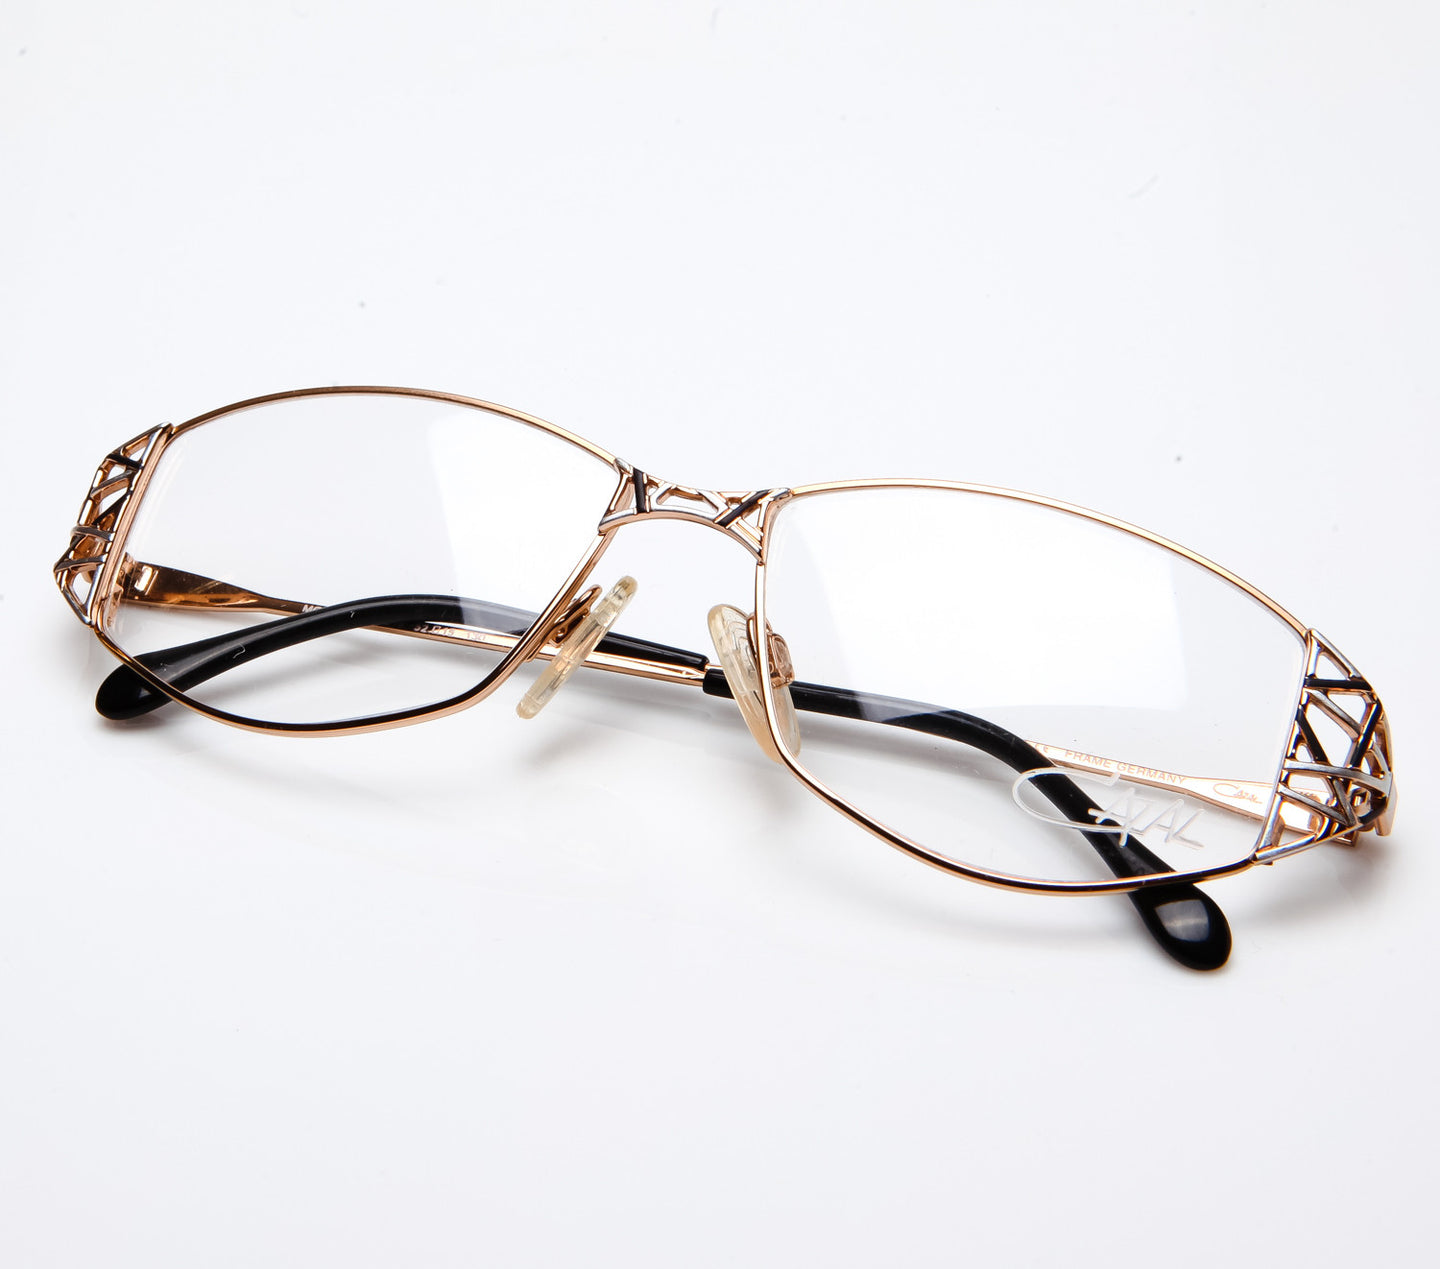 Cazal 128 918, Cazal , glasses frames, eyeglasses online, eyeglass frames, mens glasses, womens glasses, buy glasses online, designer eyeglasses, vintage sunglasses, retro sunglasses, vintage glasses, sunglass, eyeglass, glasses, lens, vintage frames company, vf